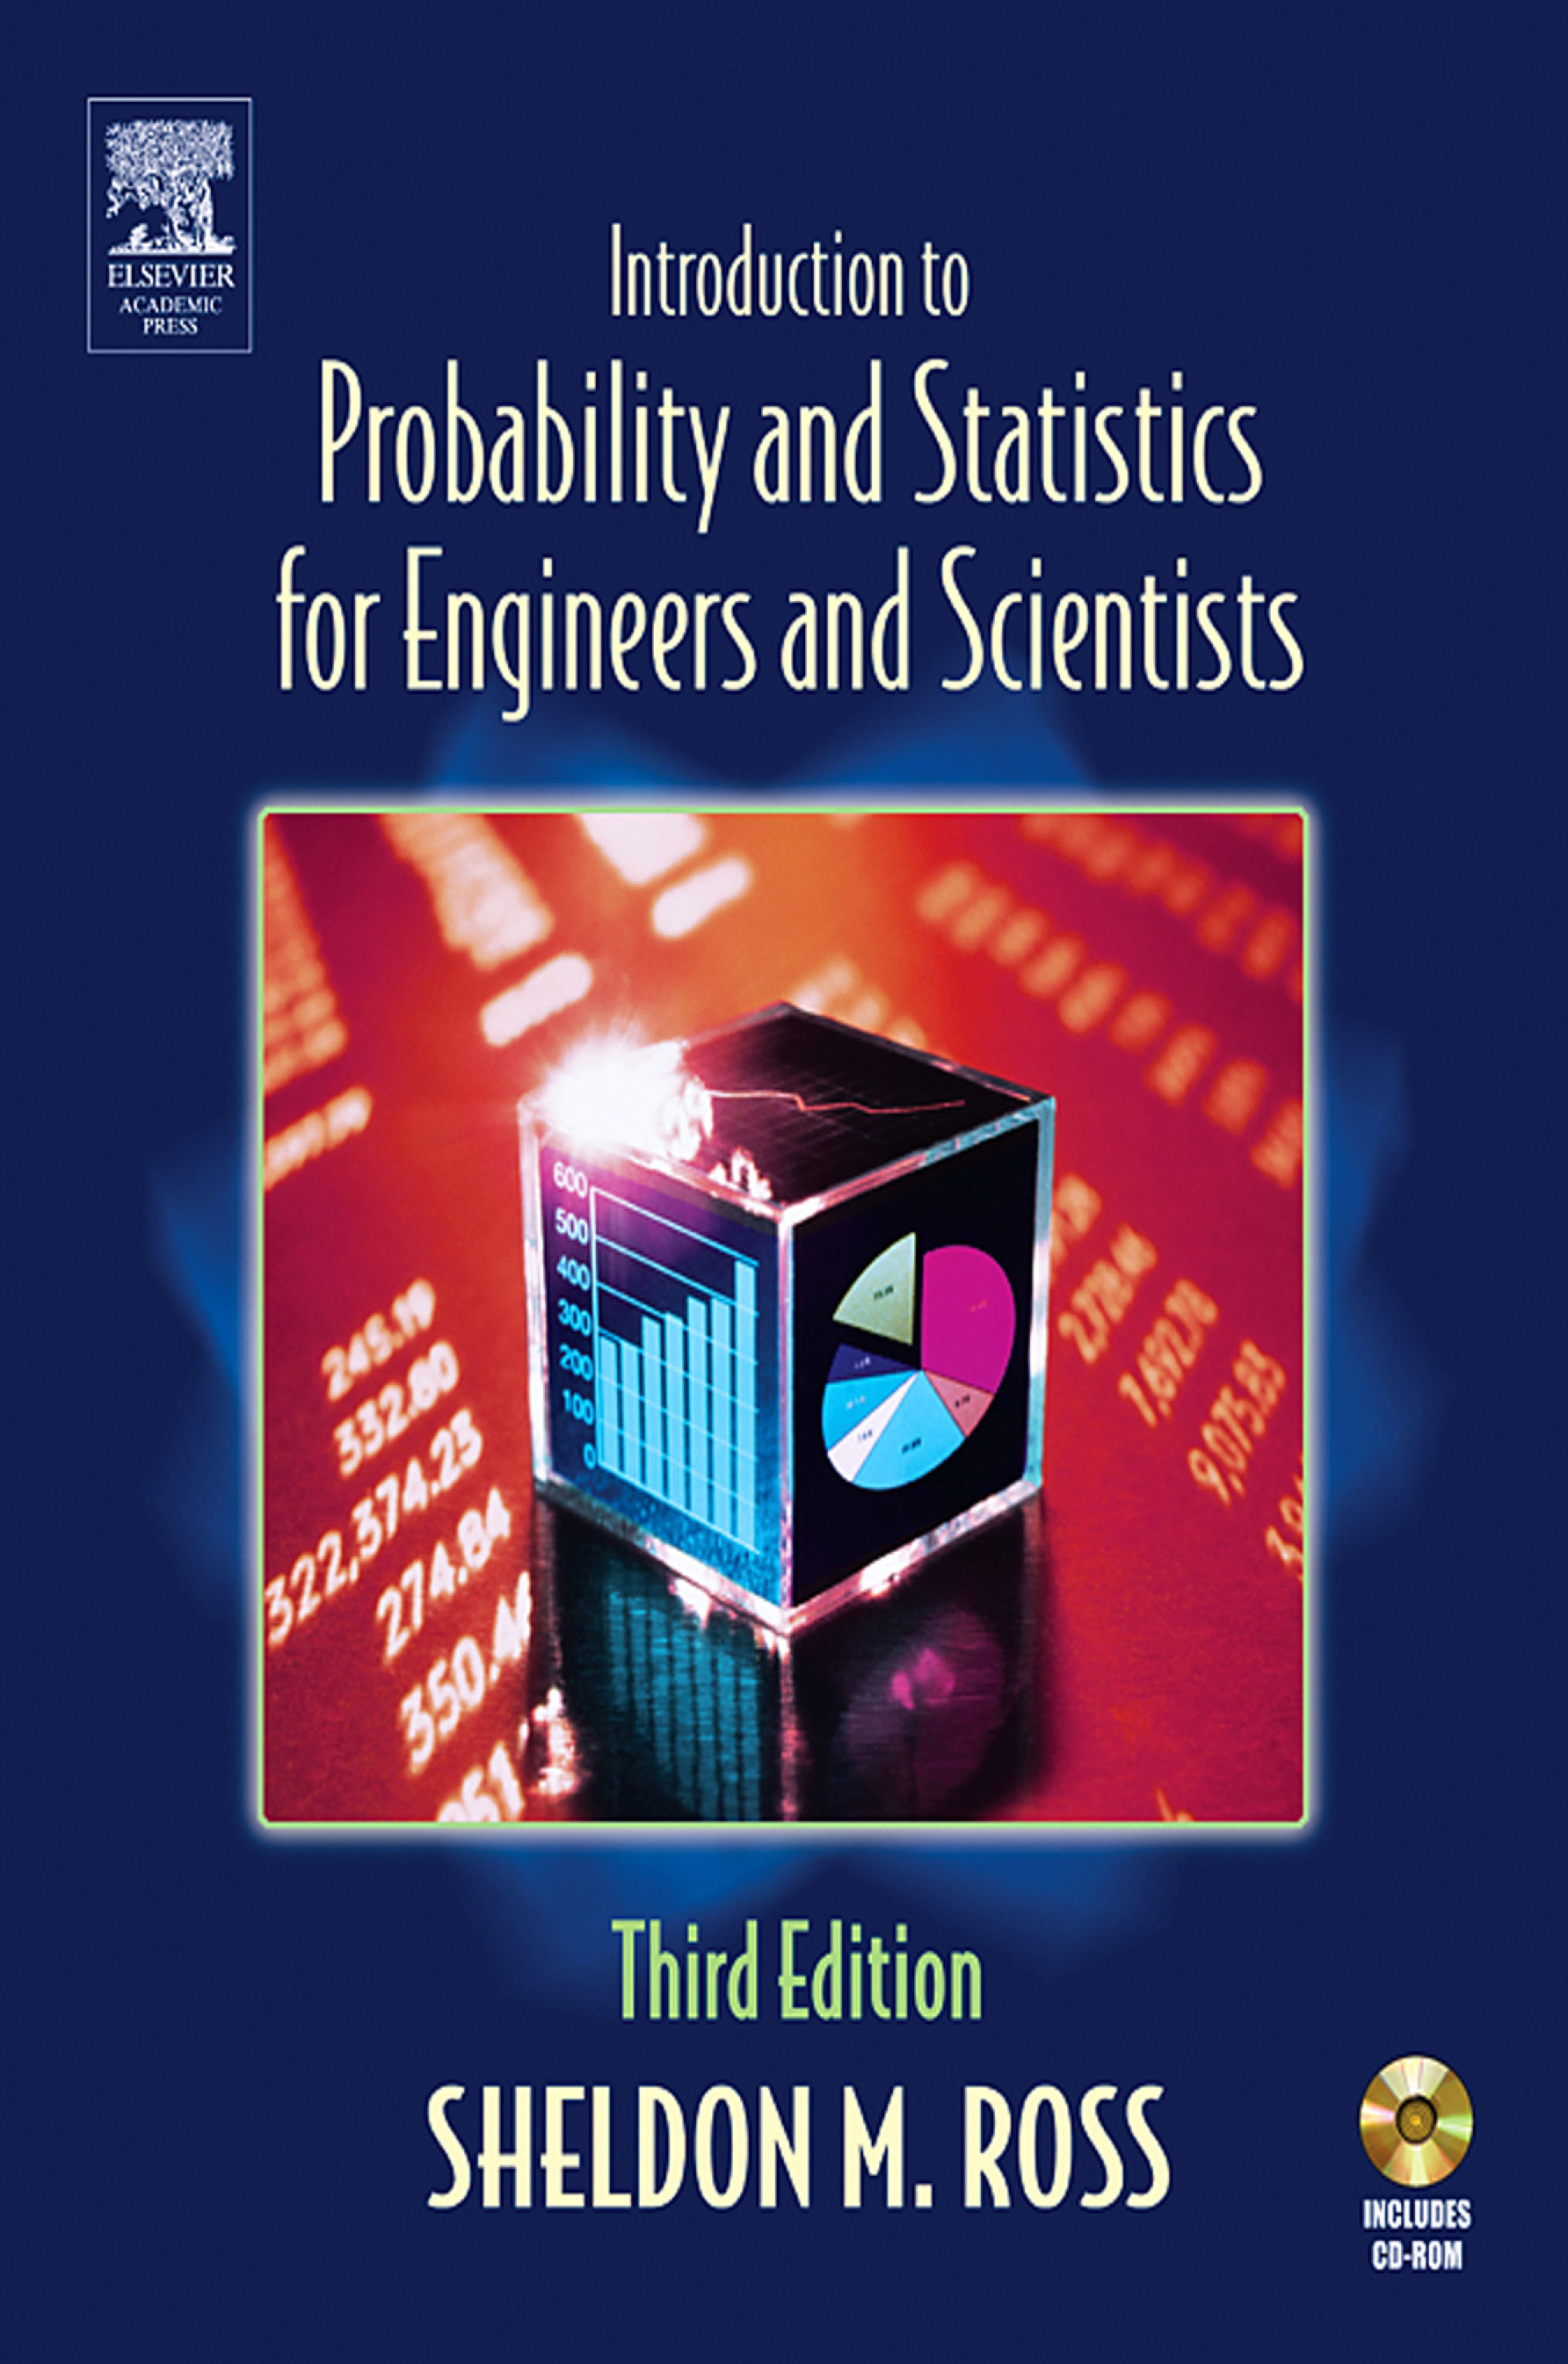 Download Ebook Introduction to Probability and Statistics for Engineers and Scientists (3rd ed.) by Sheldon M. Ross Pdf